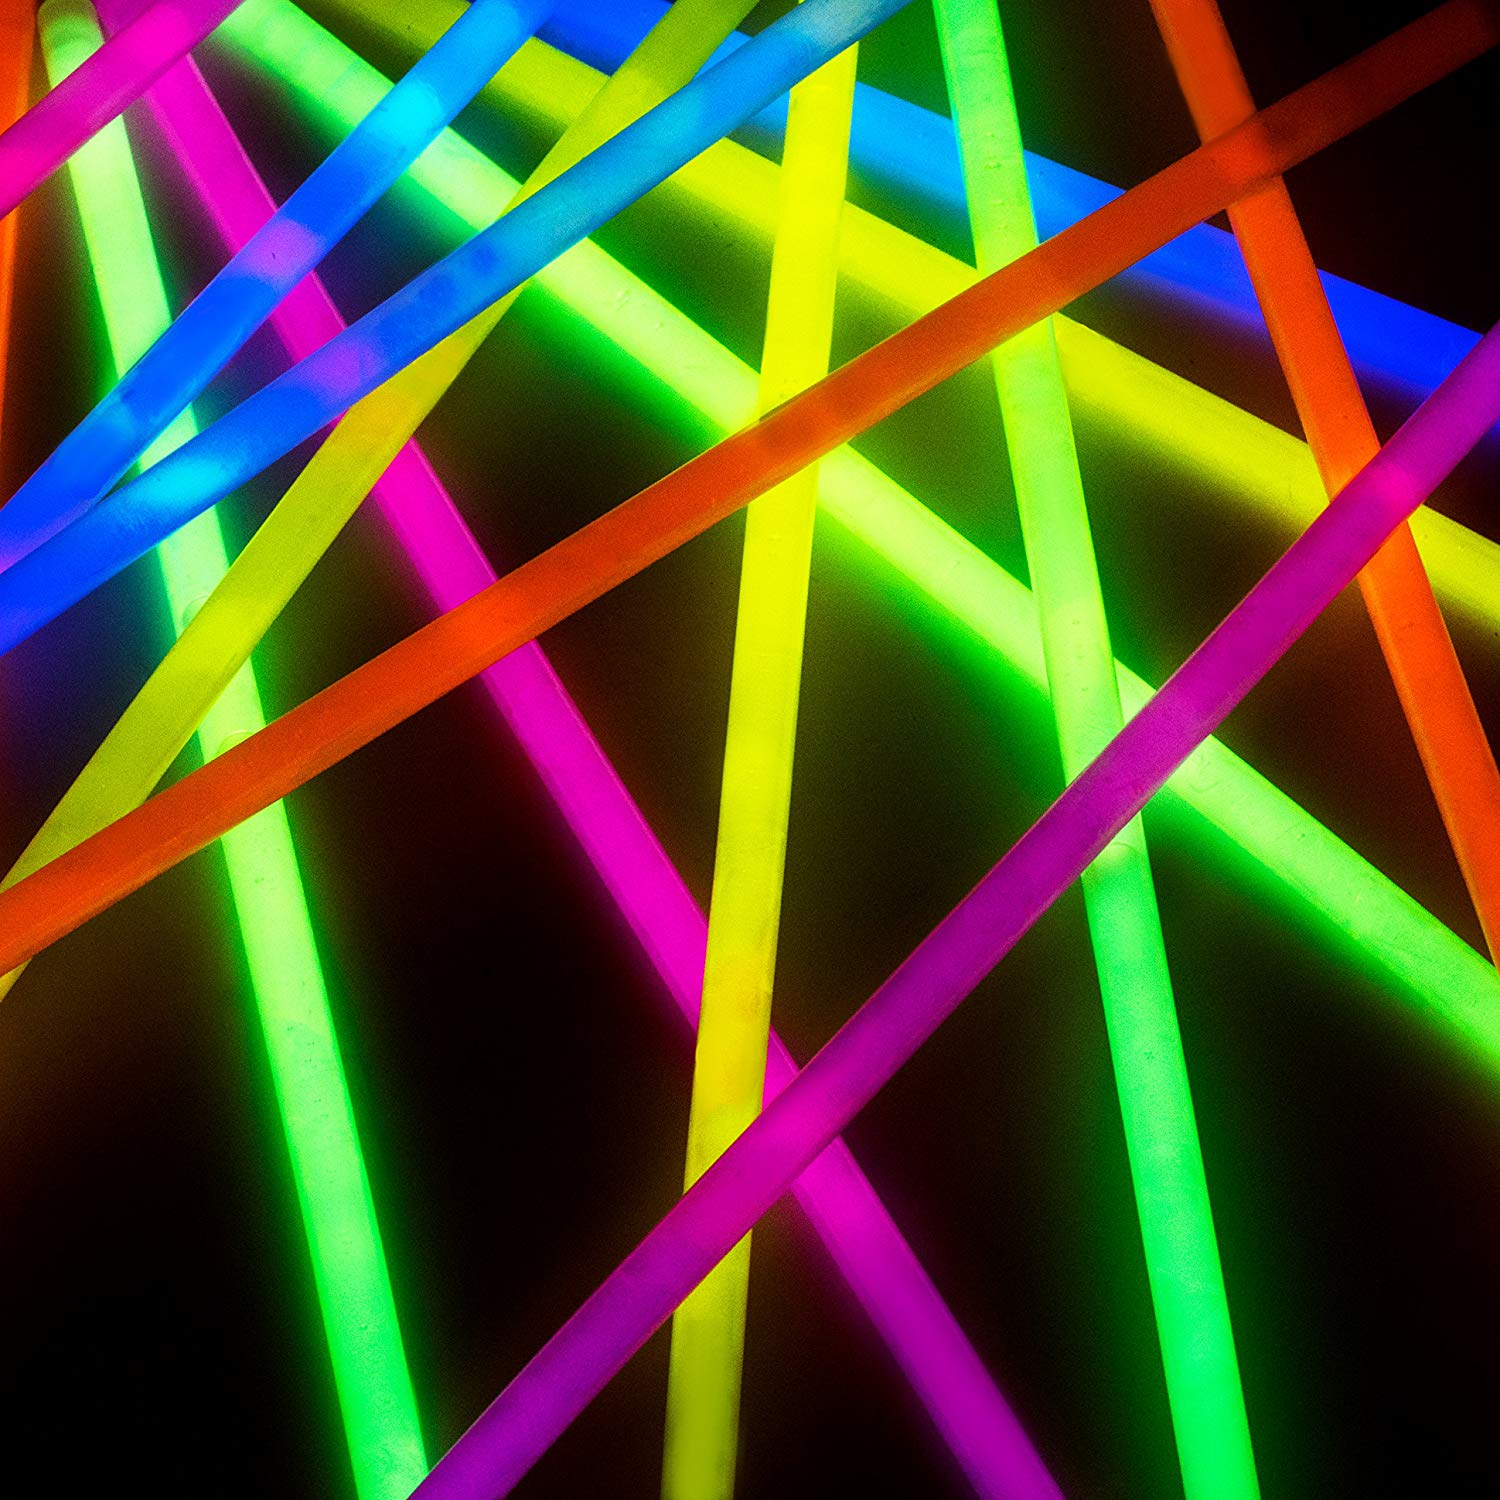 Christmas Colored Glow Sticks With Amazon Com Bulk Party Favors 300pk 8 In The